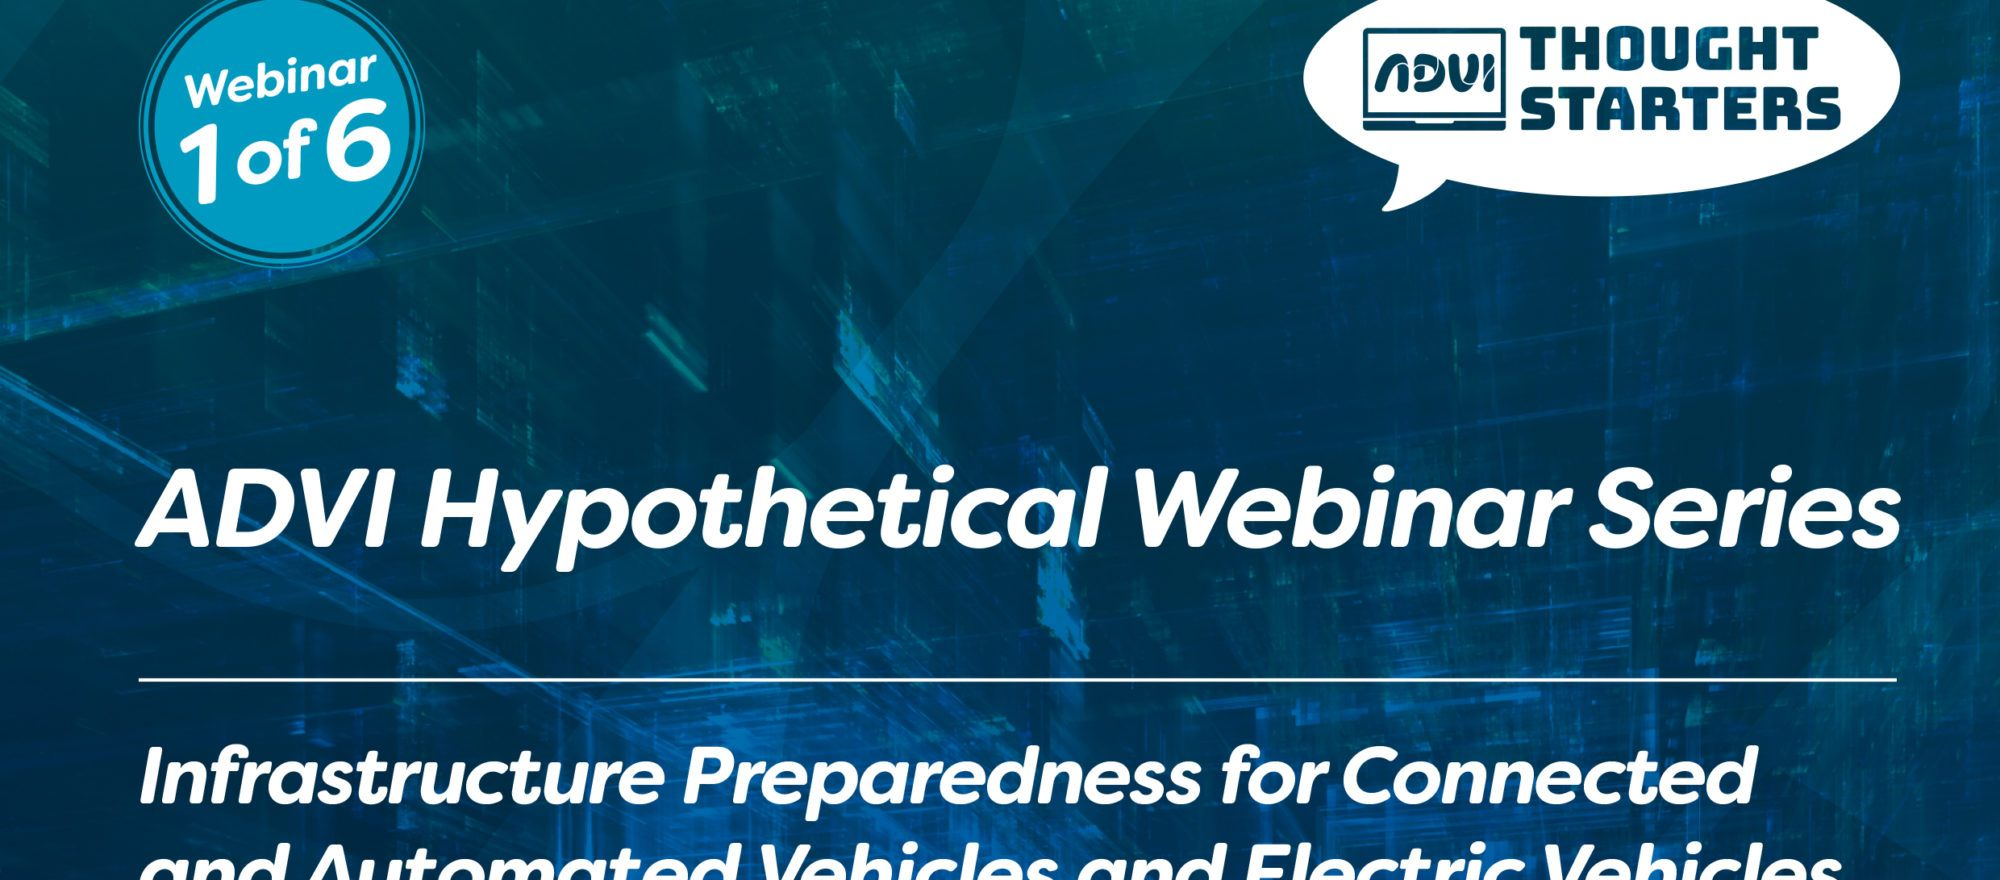 ADVI Hypothetical Thought Starters Webinar Series